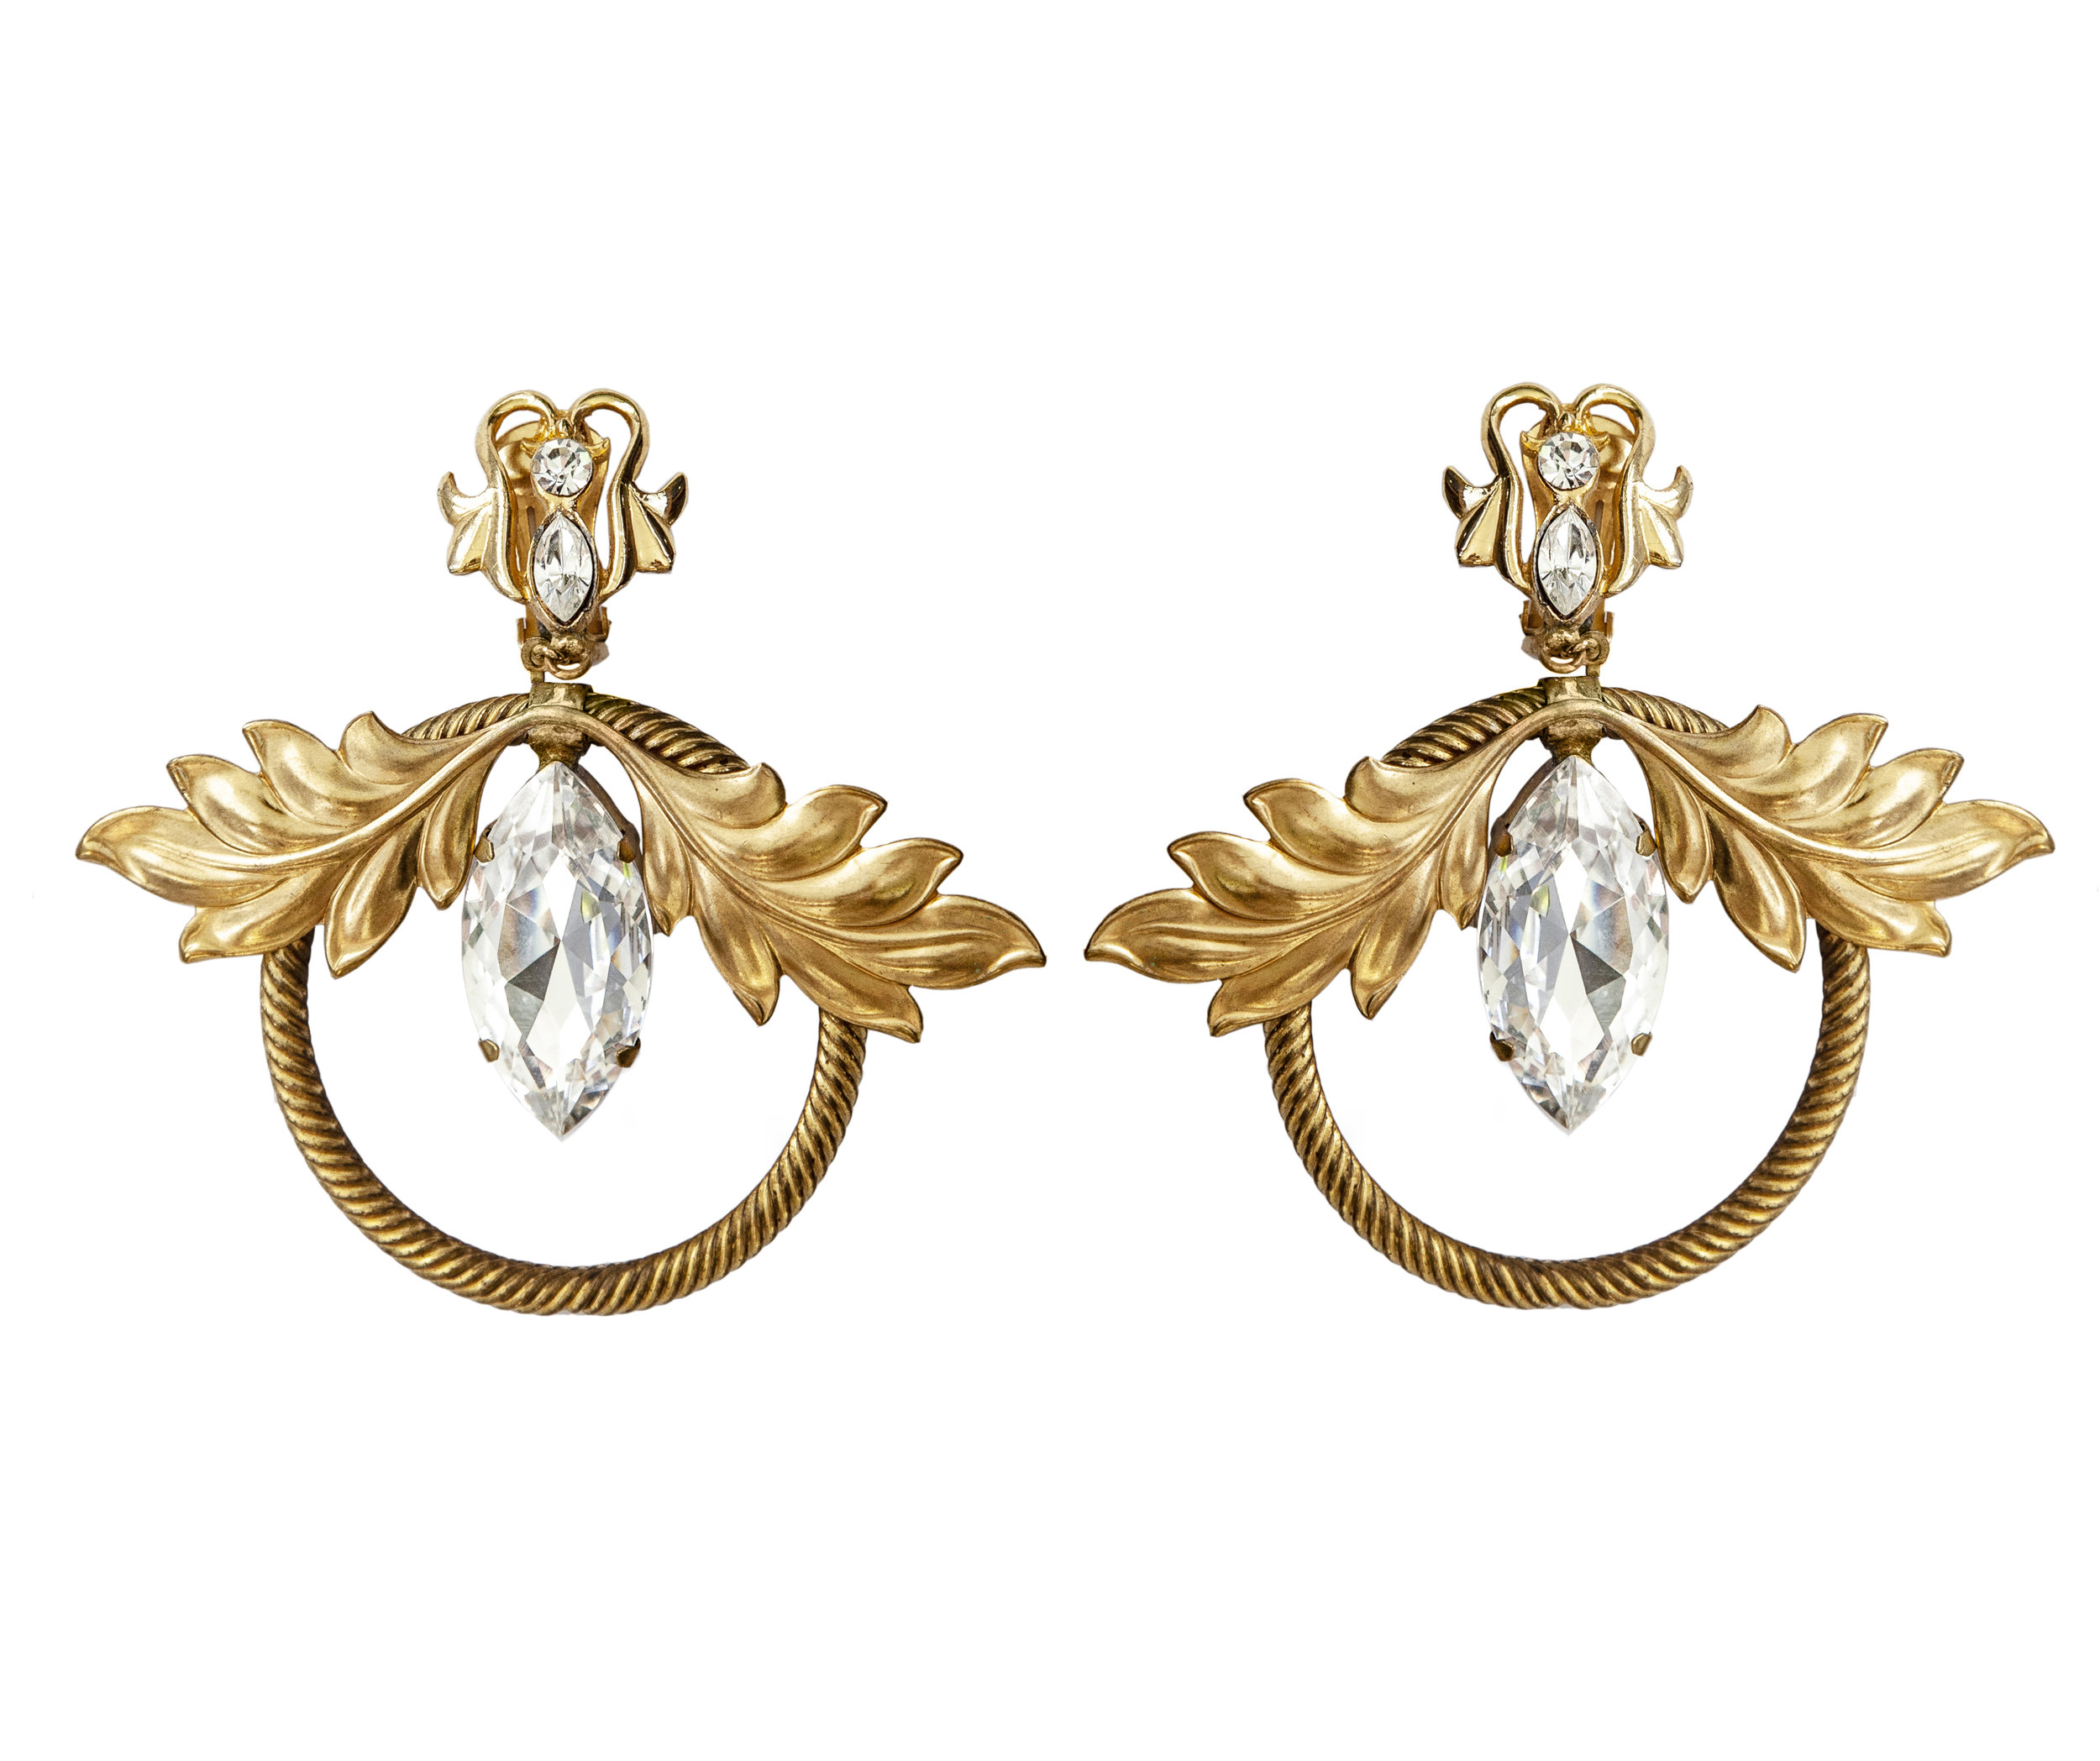 ava earrings - $300.00 AUD